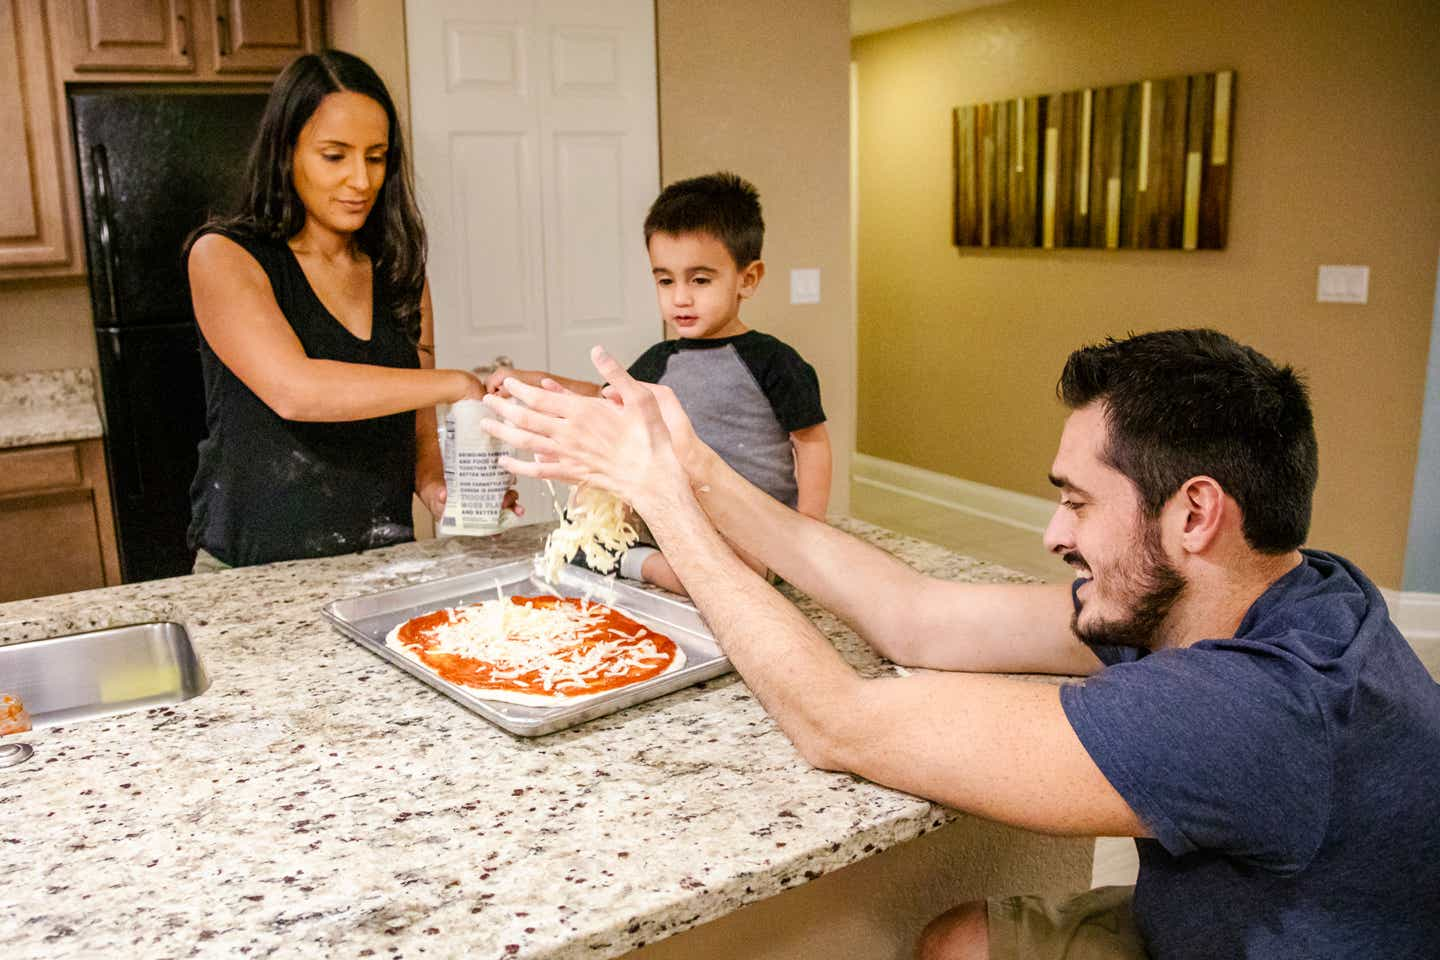 Author, Danny Pitaluga (right), his wife, Val (left) and son, Joey (middle), make a pizza together on the ADA compliant island in the kitchen of our villa located in Orange Lake Resort located in Orlando, Florida.